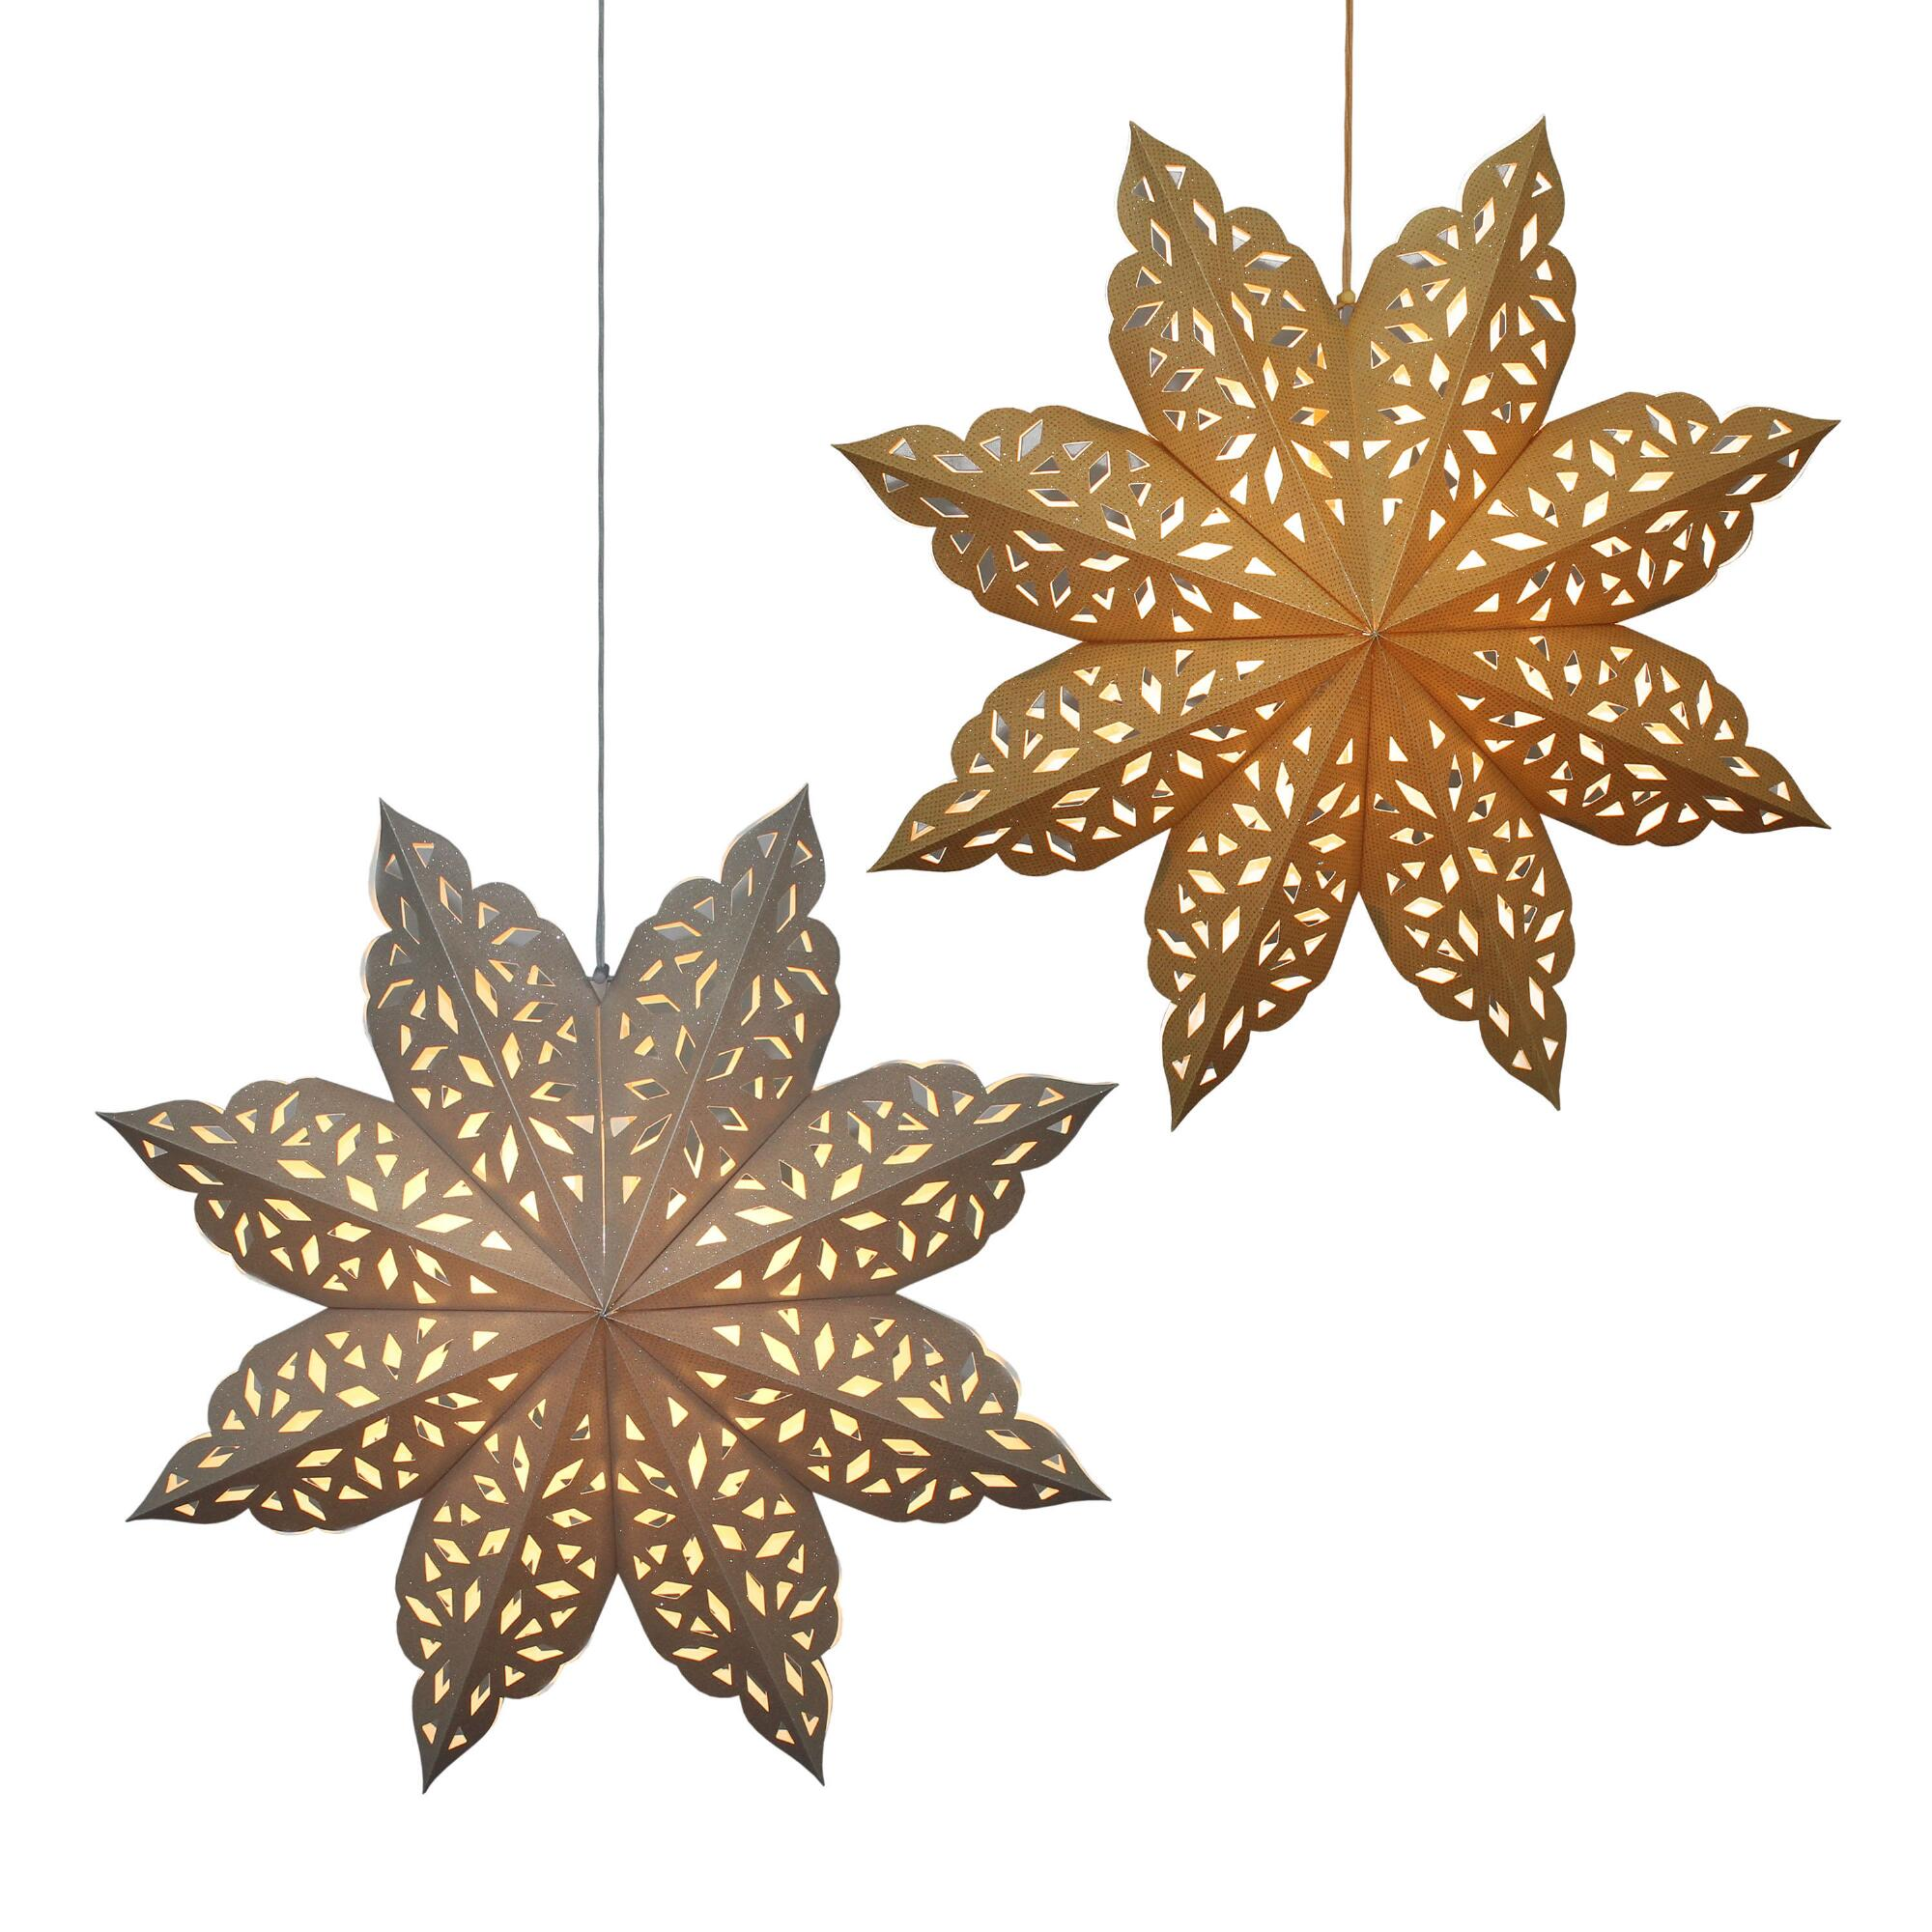 Gold And Silver Glitter Paper Snowflake Lanterns Set Of 2 $25.98